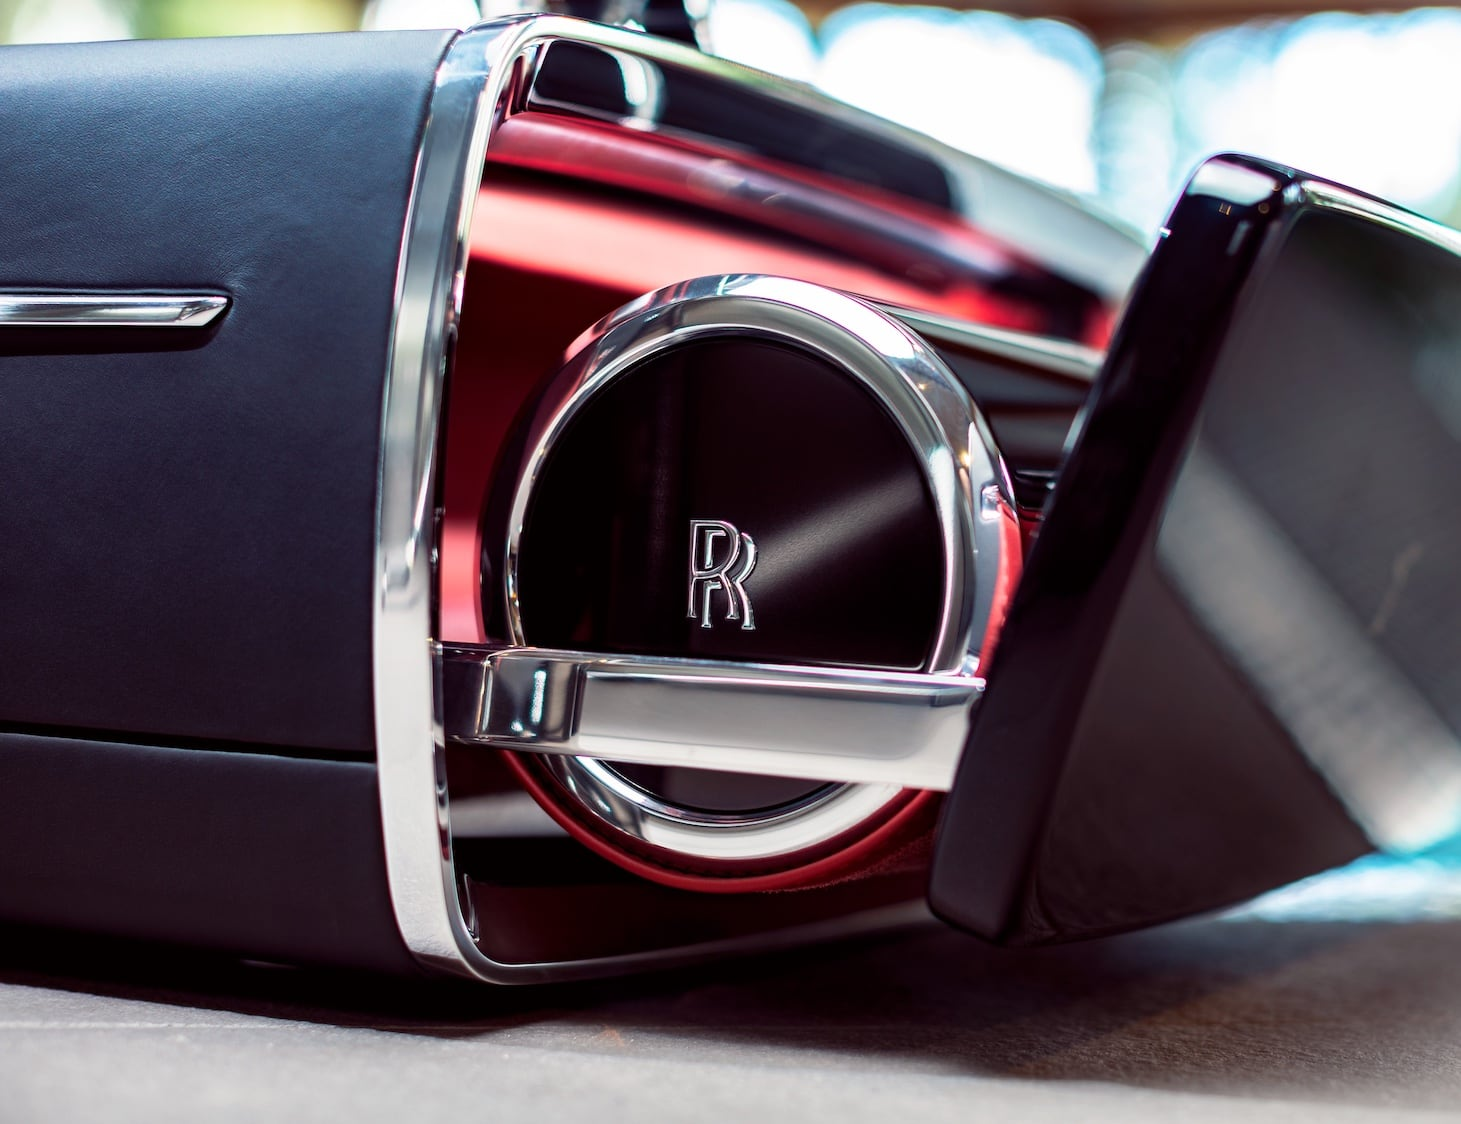 Rolls Royce Champagne Car Chest will take your luxury car to the next level